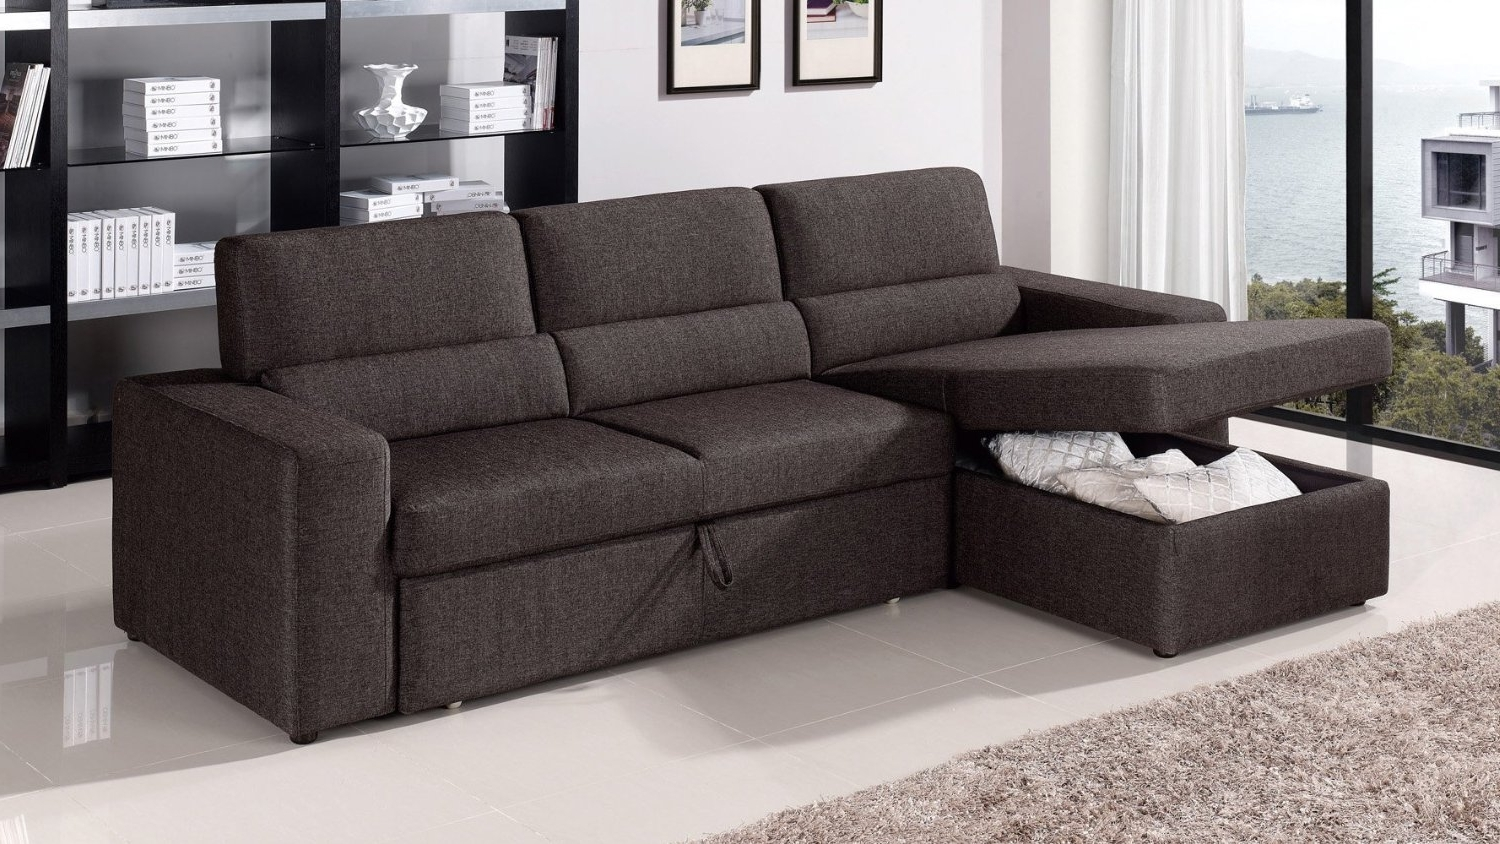 Current Sofa Sleeper With Chaise Lounge – Ansugallery For Sleeper Sofas With Chaise Lounge (View 2 of 15)